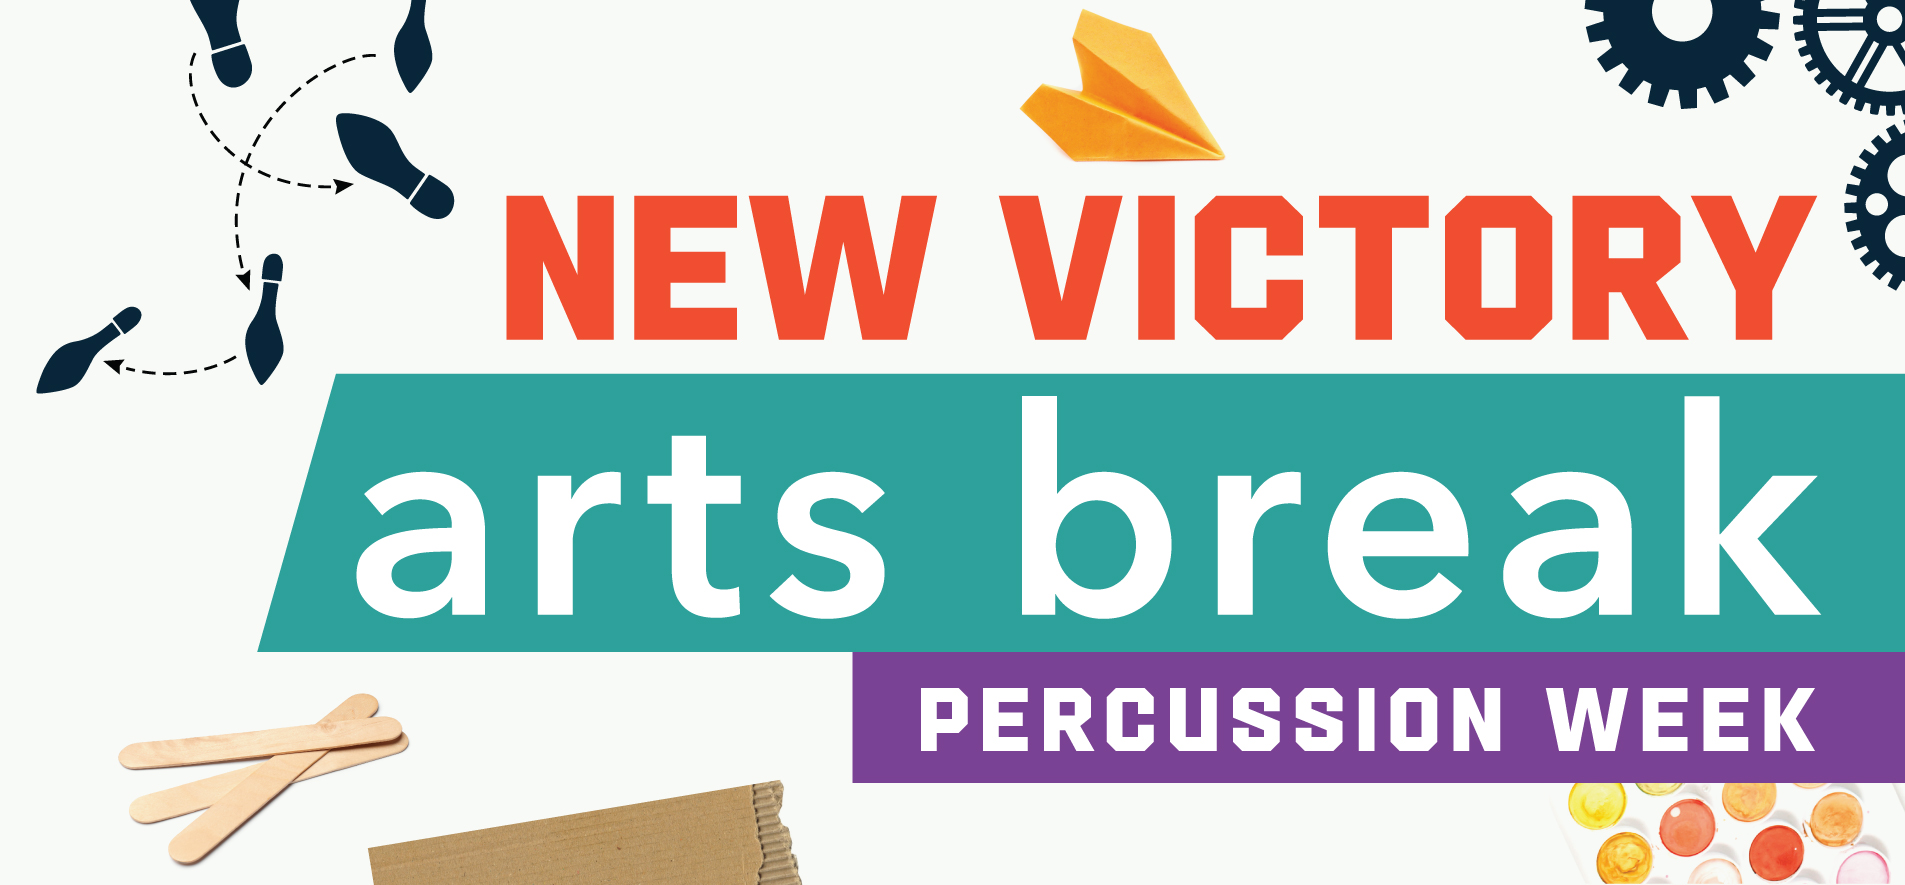 New Victory Arts Break: Percussion Week